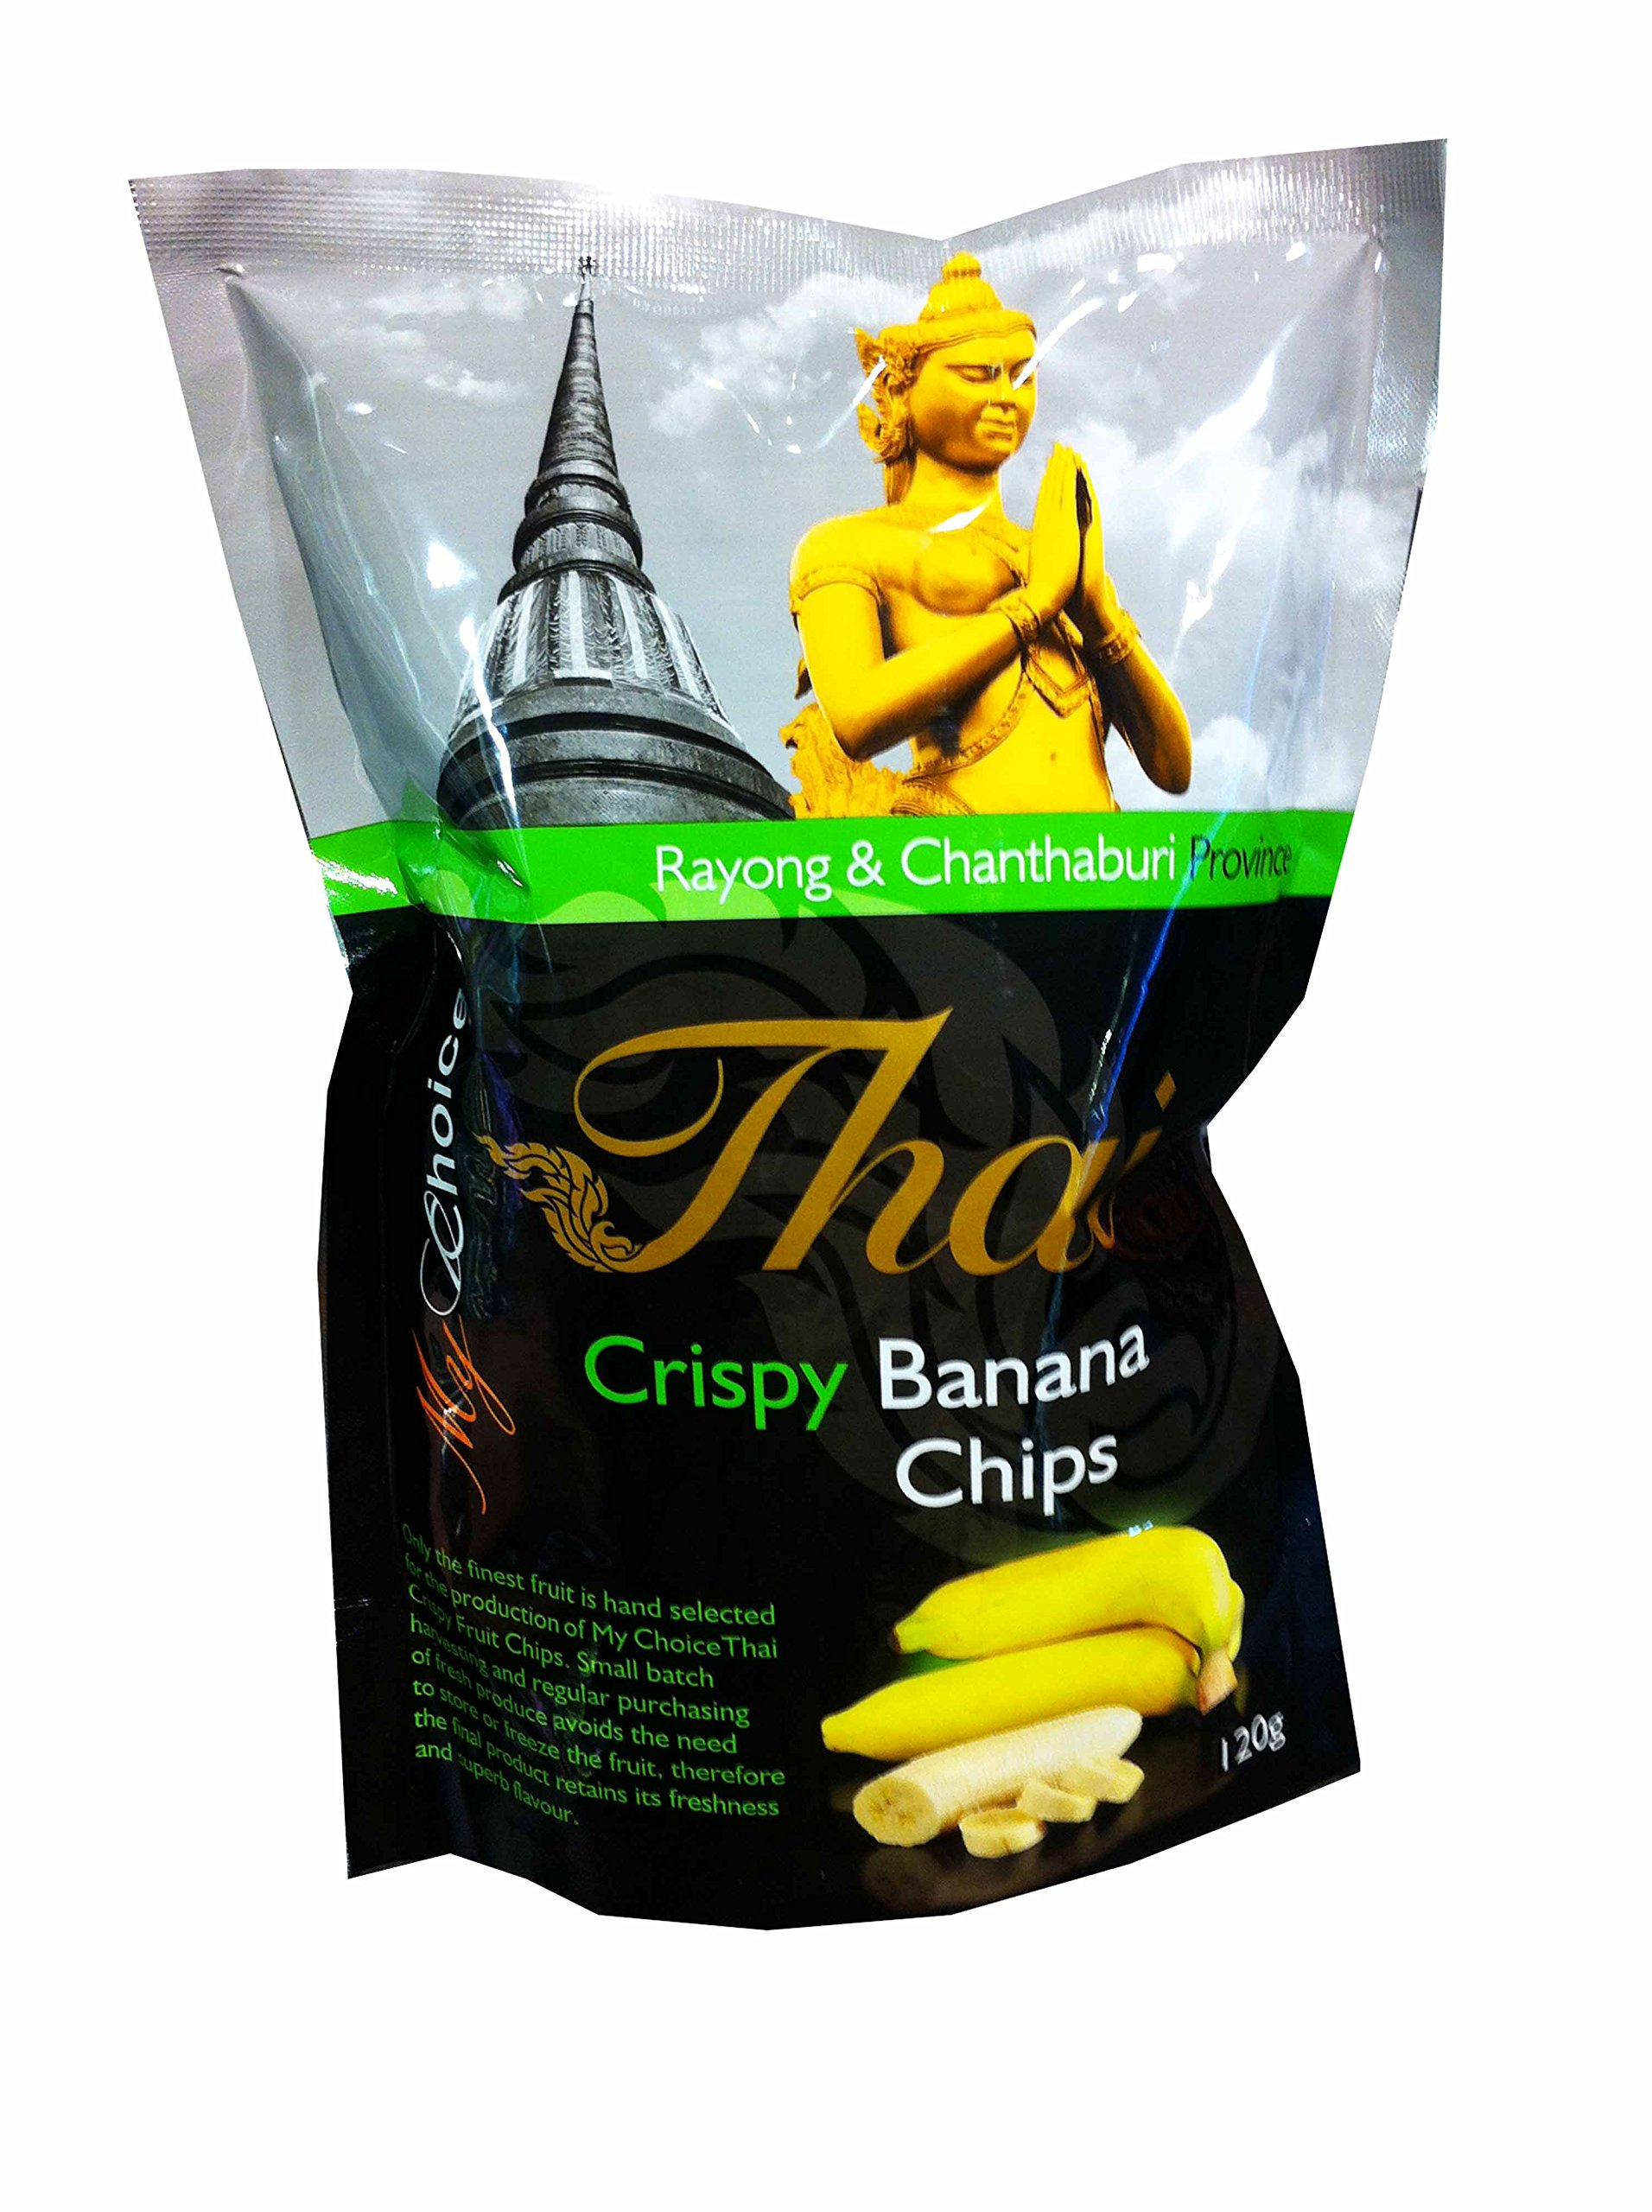 2 Packs of Crispy Banana Chips, Delicious Fruit Snack From My Choice Thai Brand, 4 or 5 Strar Otop Rating Approved. (120 G/Pack)